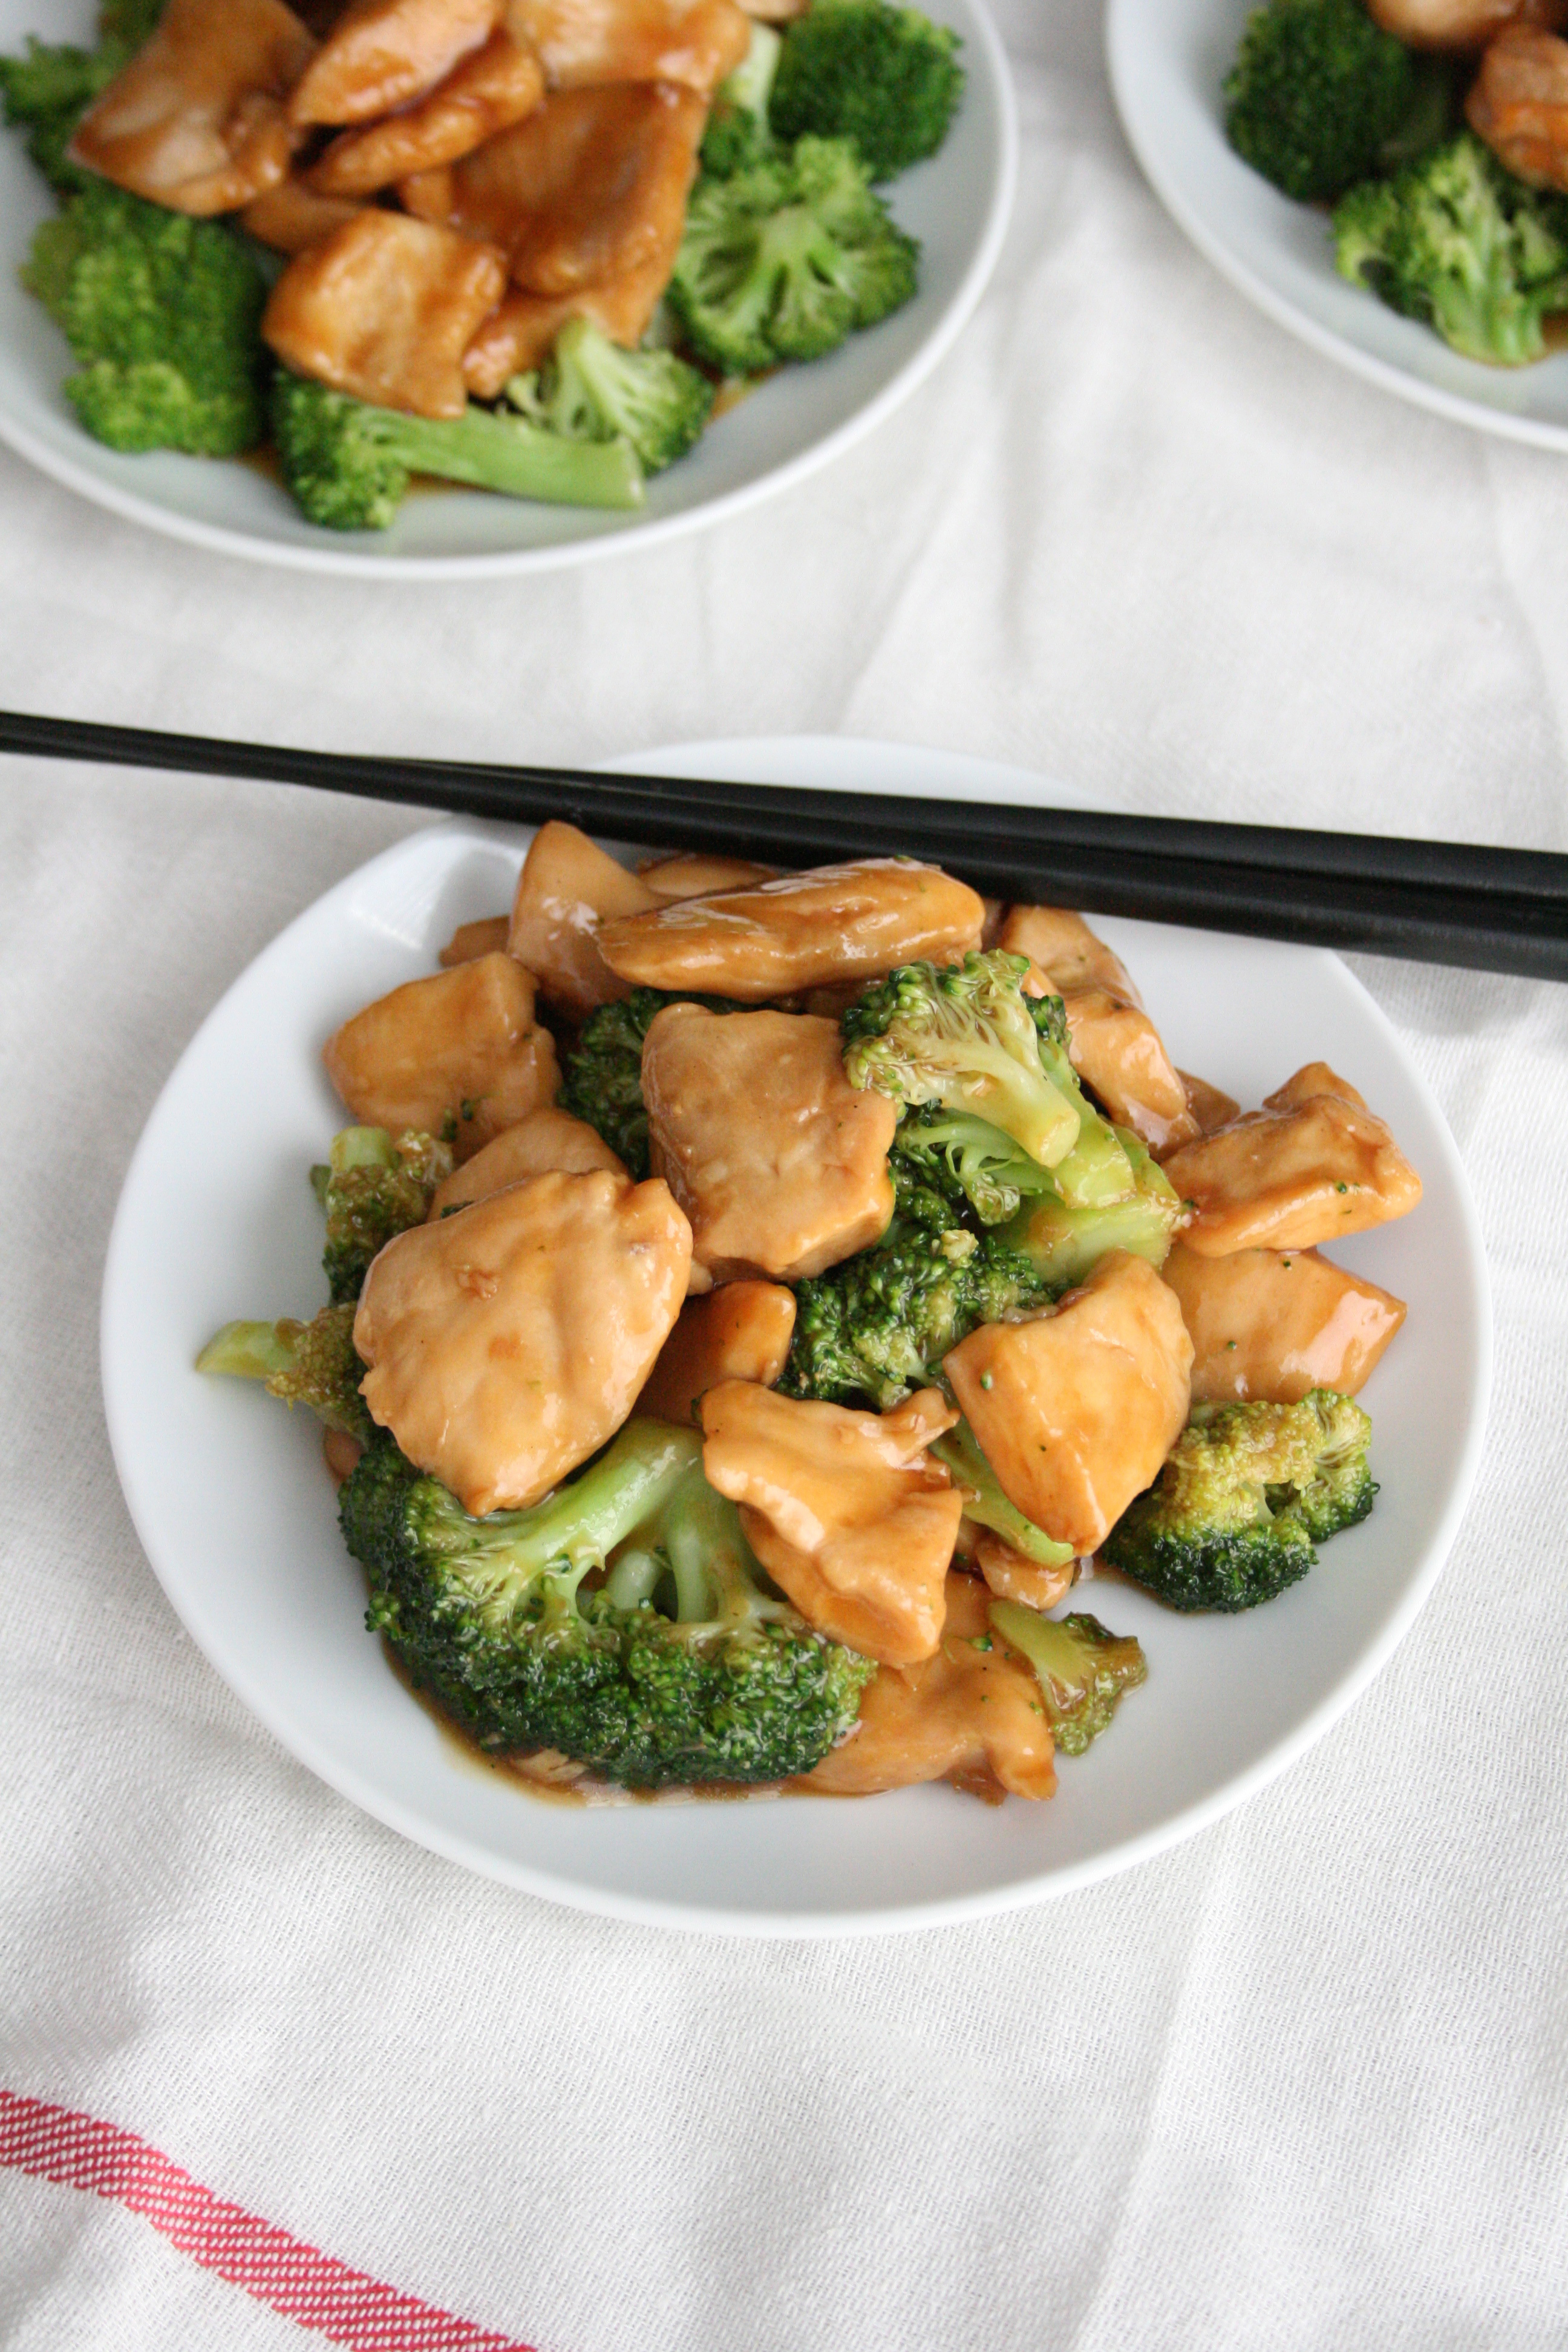 Rush Hour Chicken & Broccoli Stir Fry